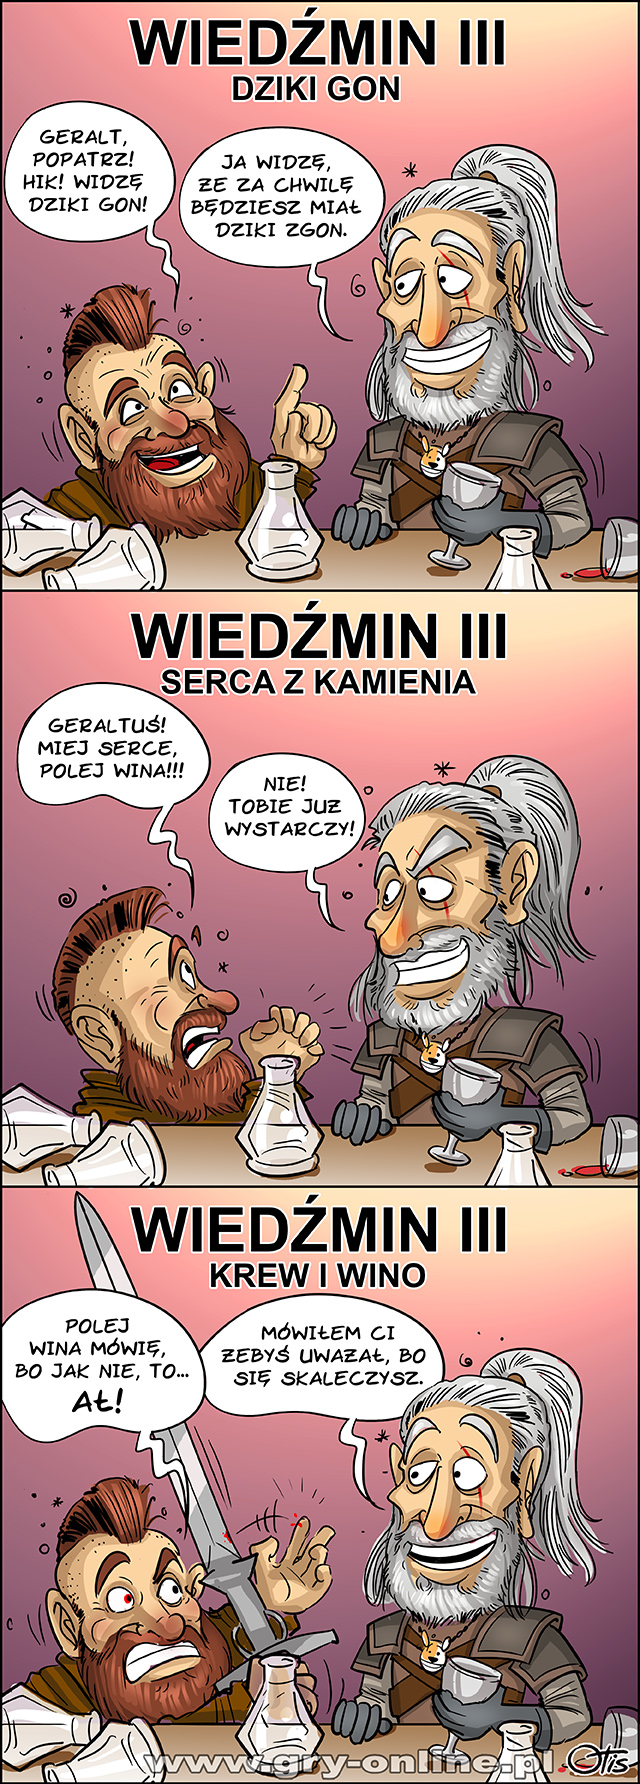 Wiedźmin 3 GotY, komiks Cartoon Games, odc. 184.